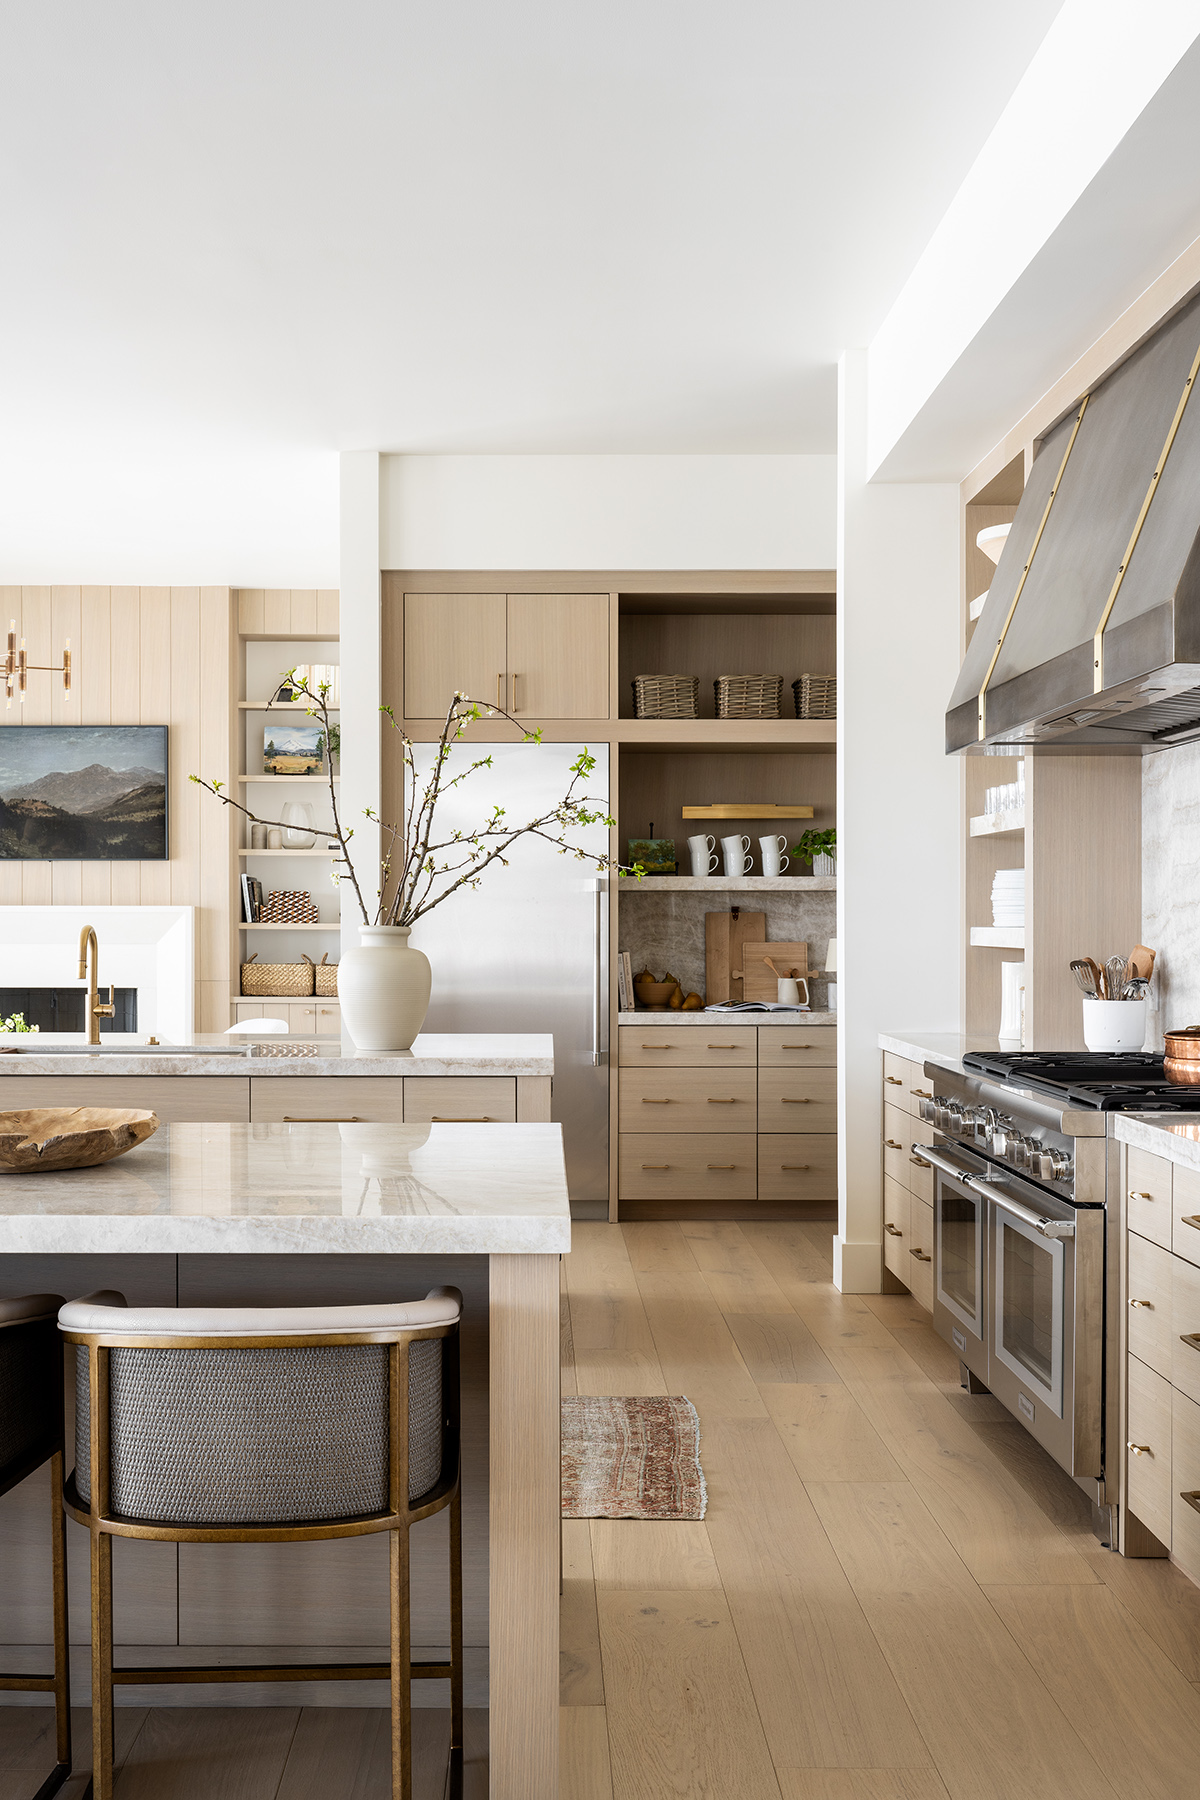 PC Contemporary Project: Our Favorite Finishes